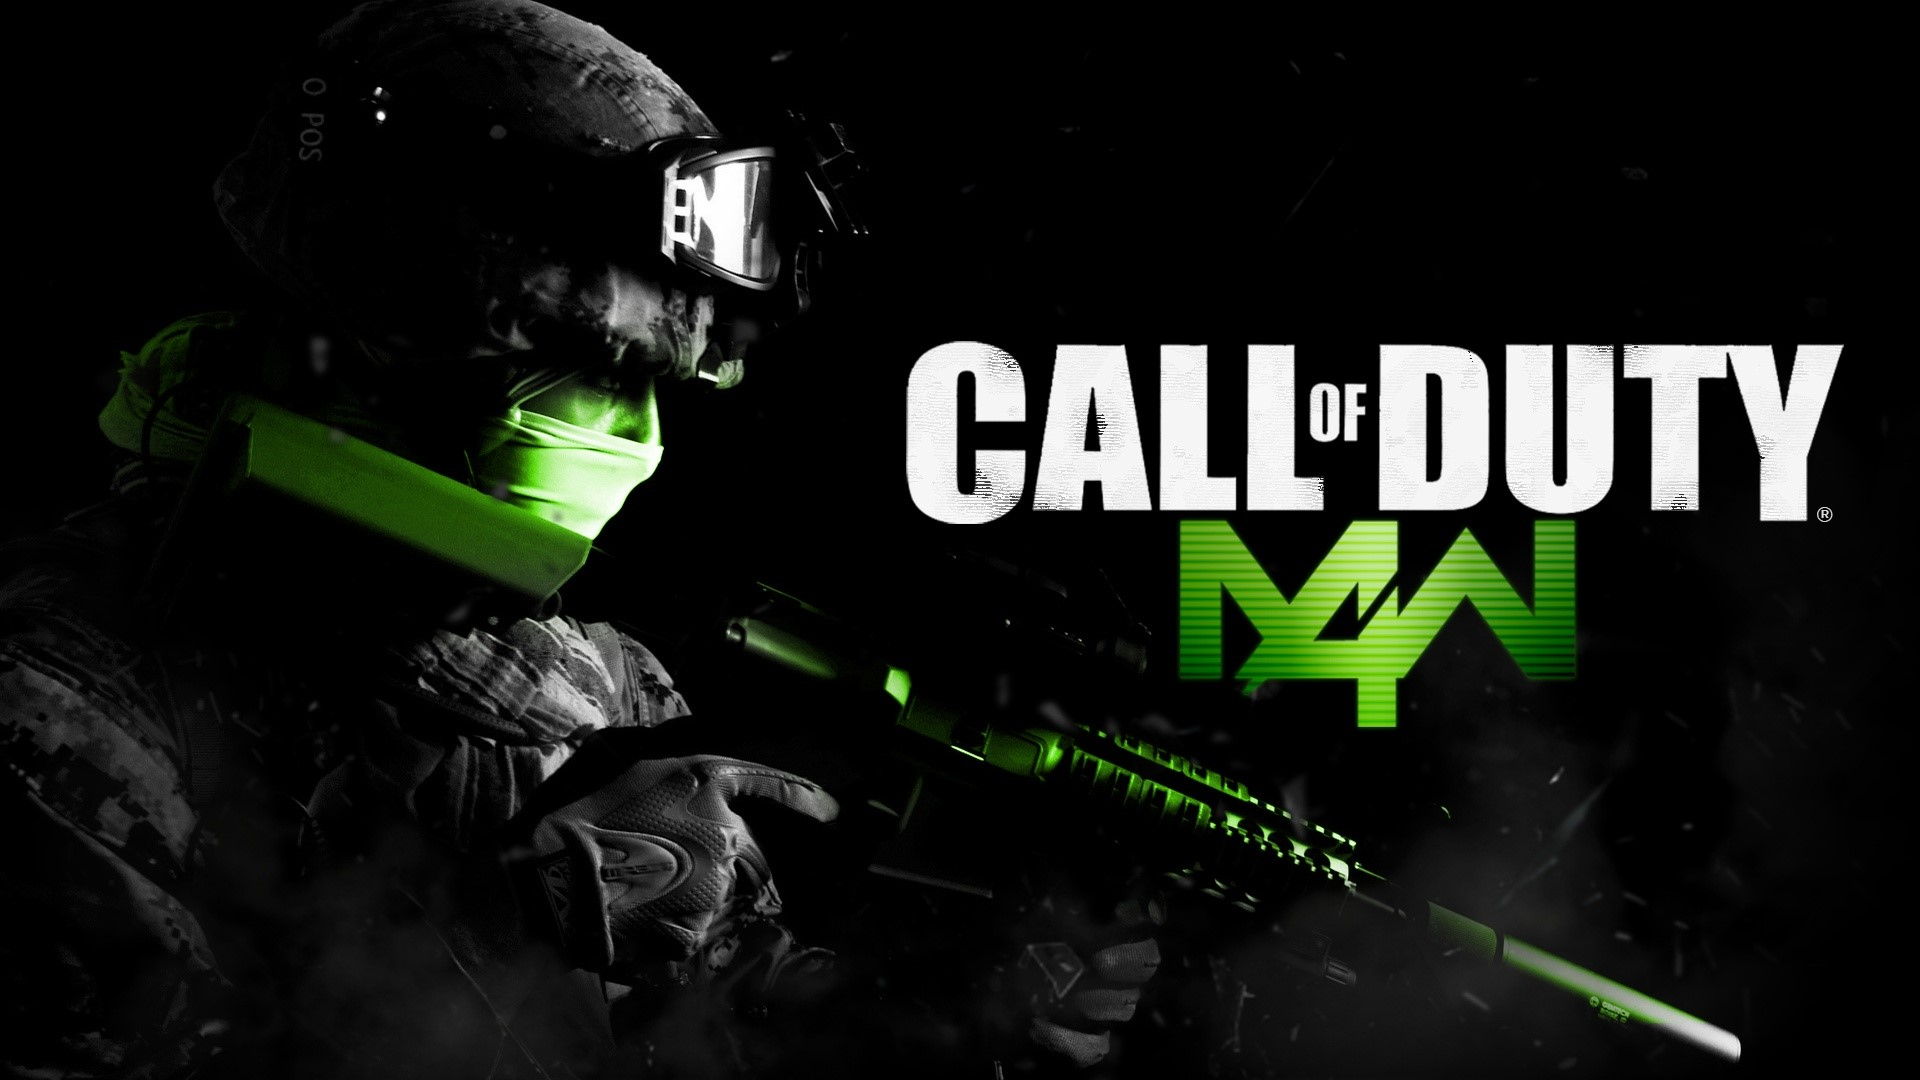 Call Of Duty Modern Warfare 4 Fondo De Pantalla Full Hd Id567